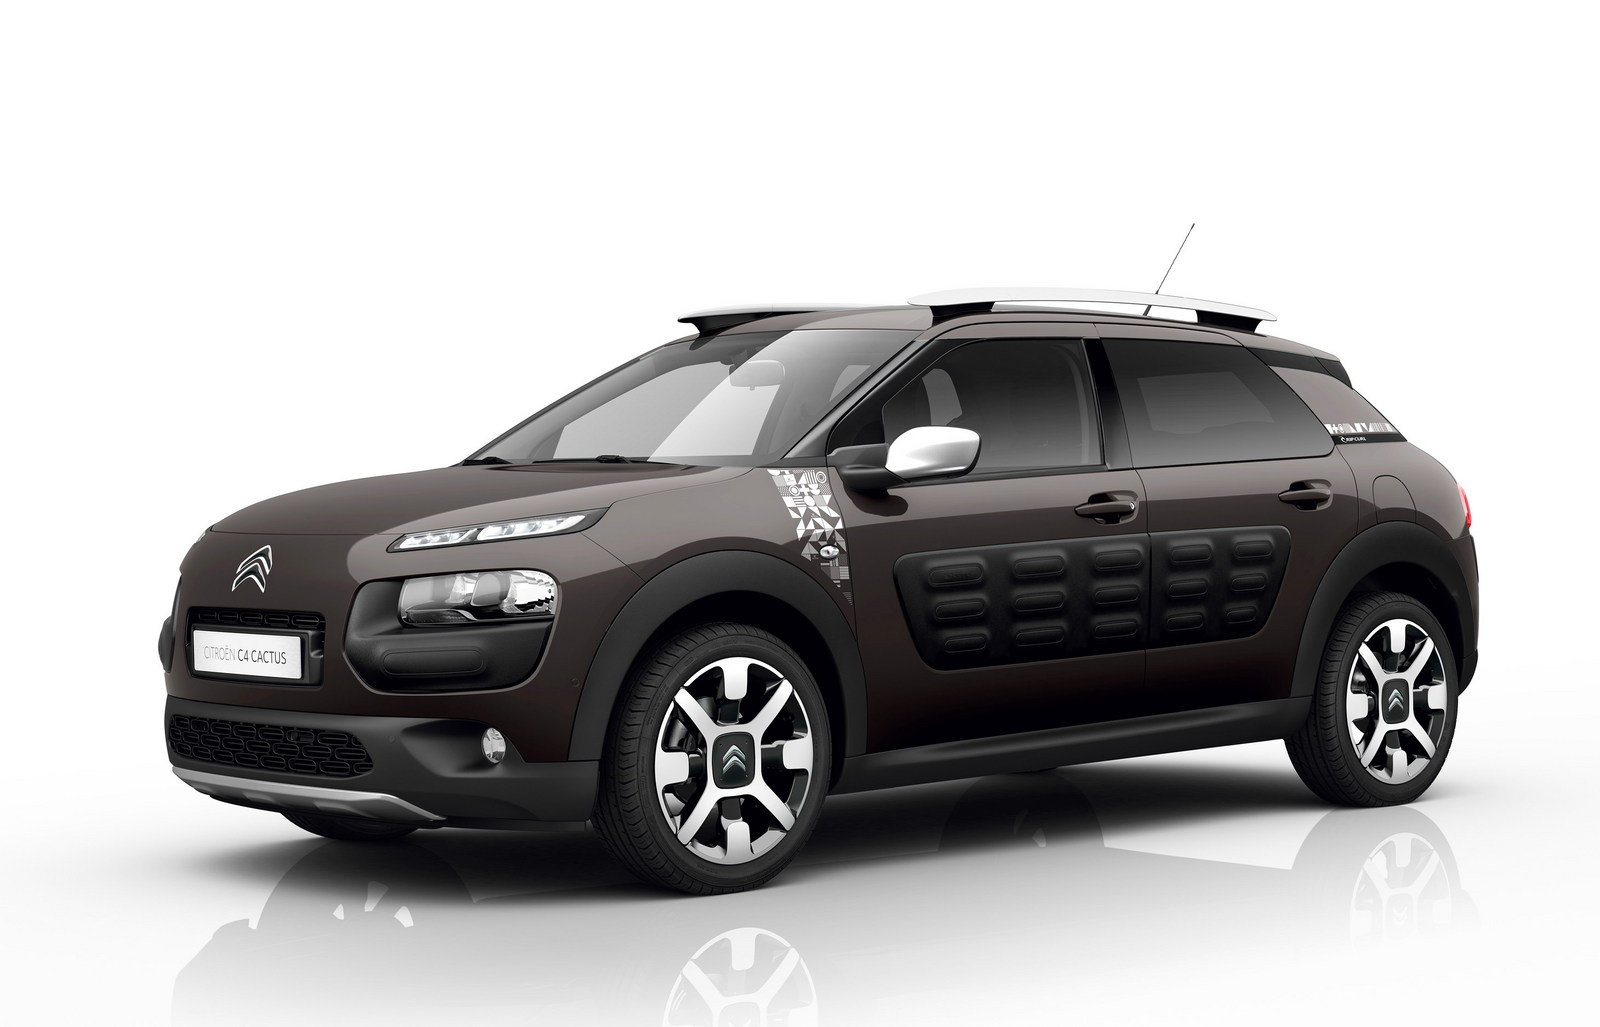 2016 citro n c4 cactus rip curl special edition picture 667246 car review top speed. Black Bedroom Furniture Sets. Home Design Ideas